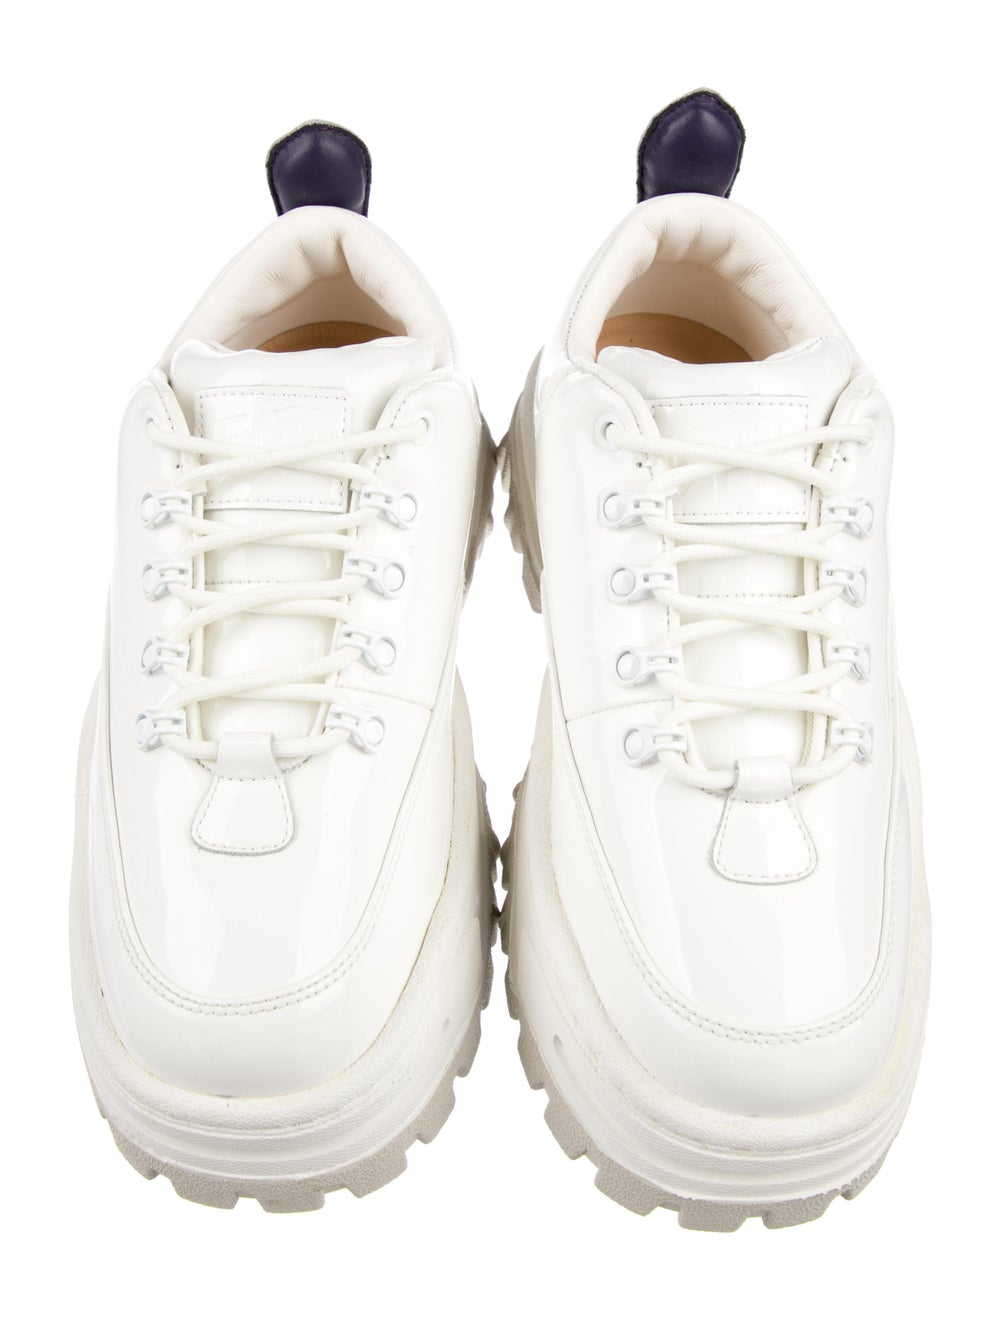 Eytys Sneakers White - image 3